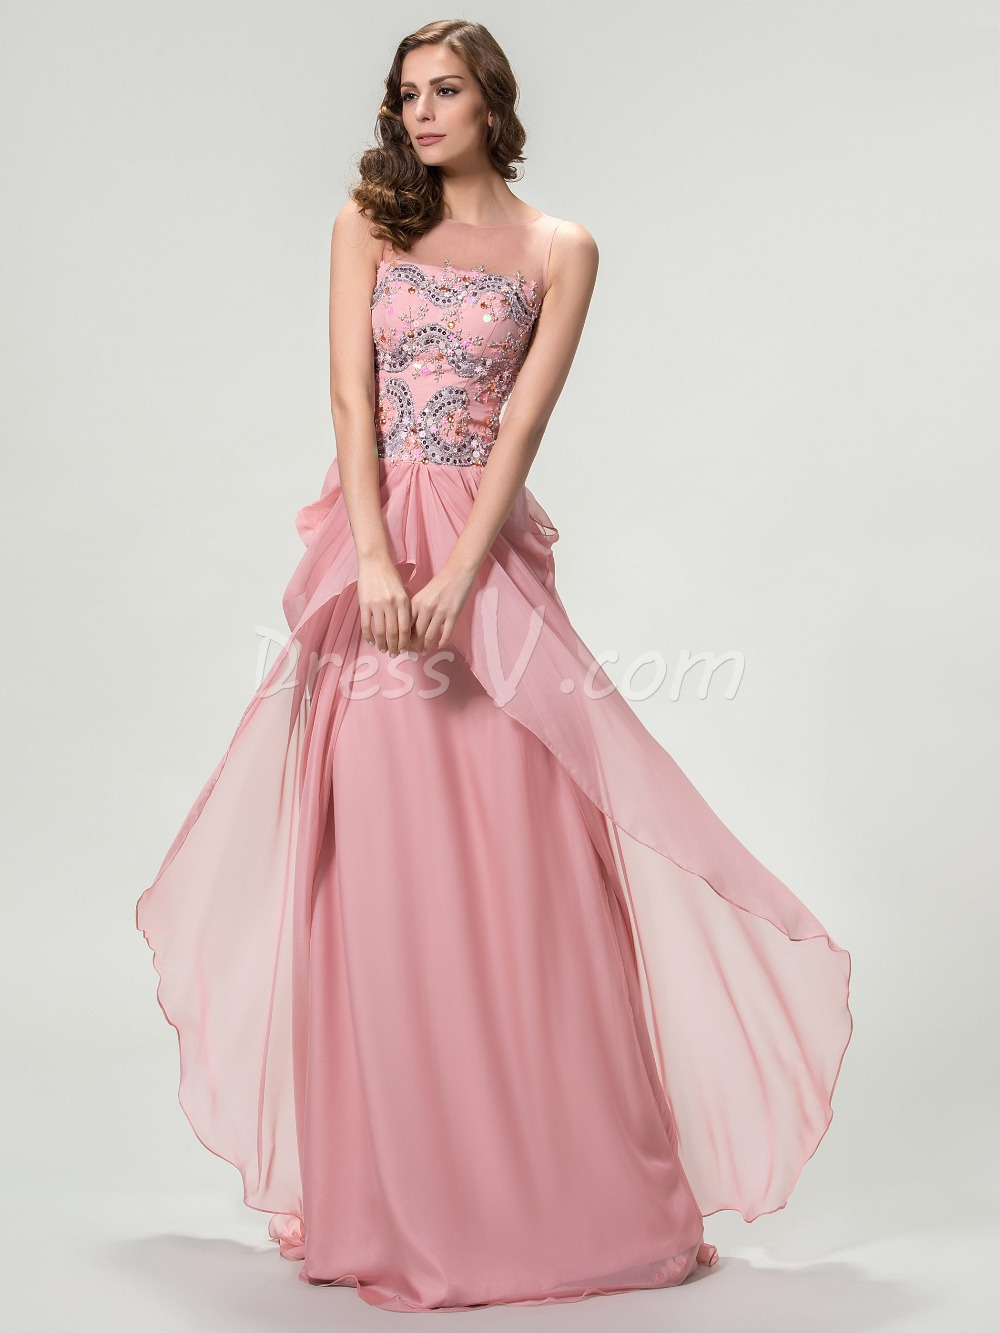 Charming long evening dresses sheer round neck ruched chiffon beaded